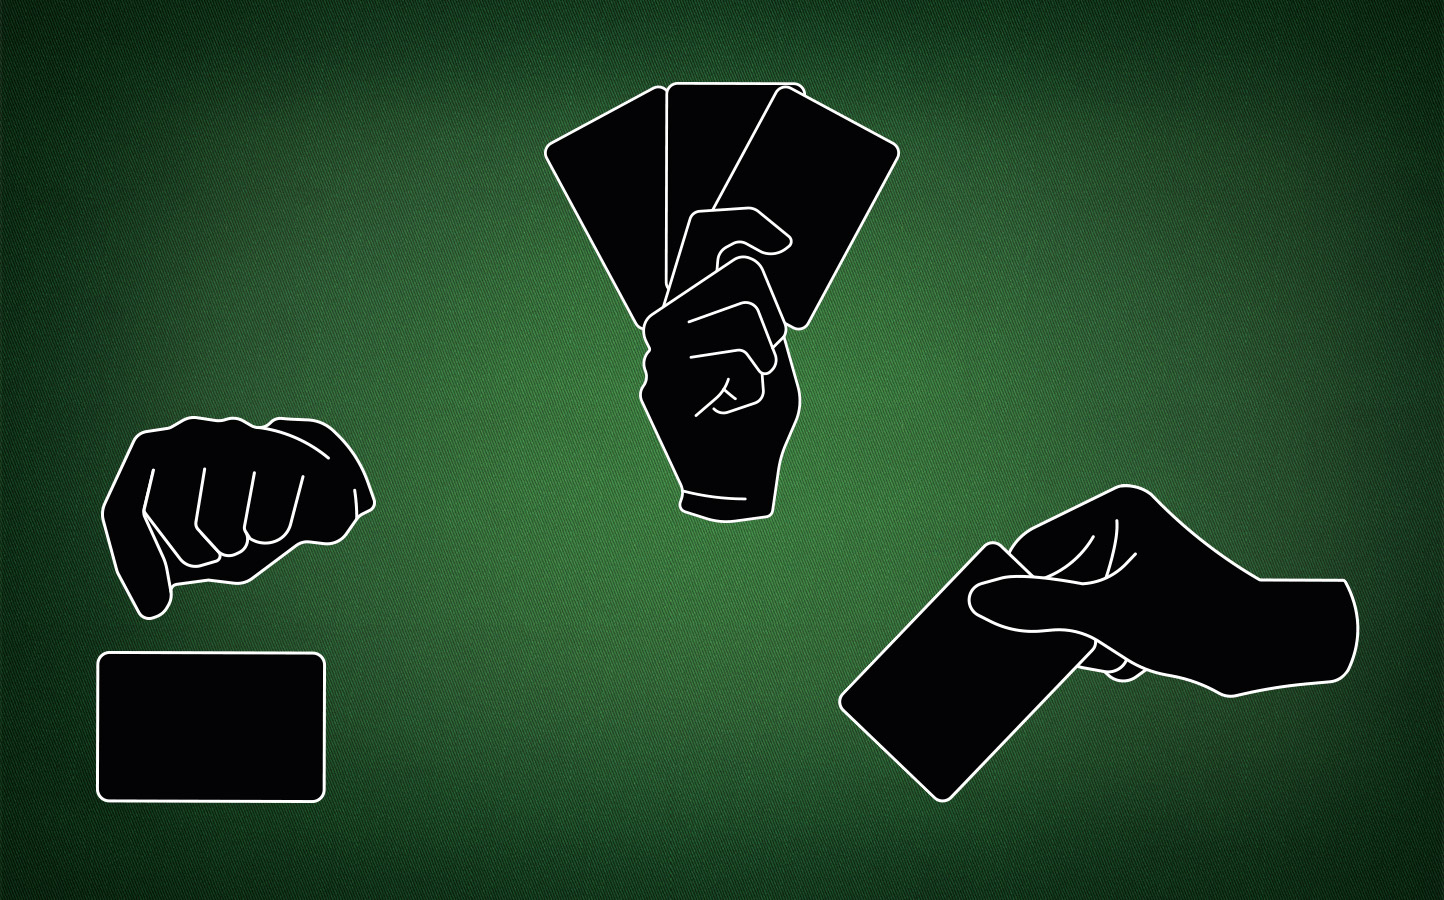 Lesson 4: Trick-Taking in Pinochle